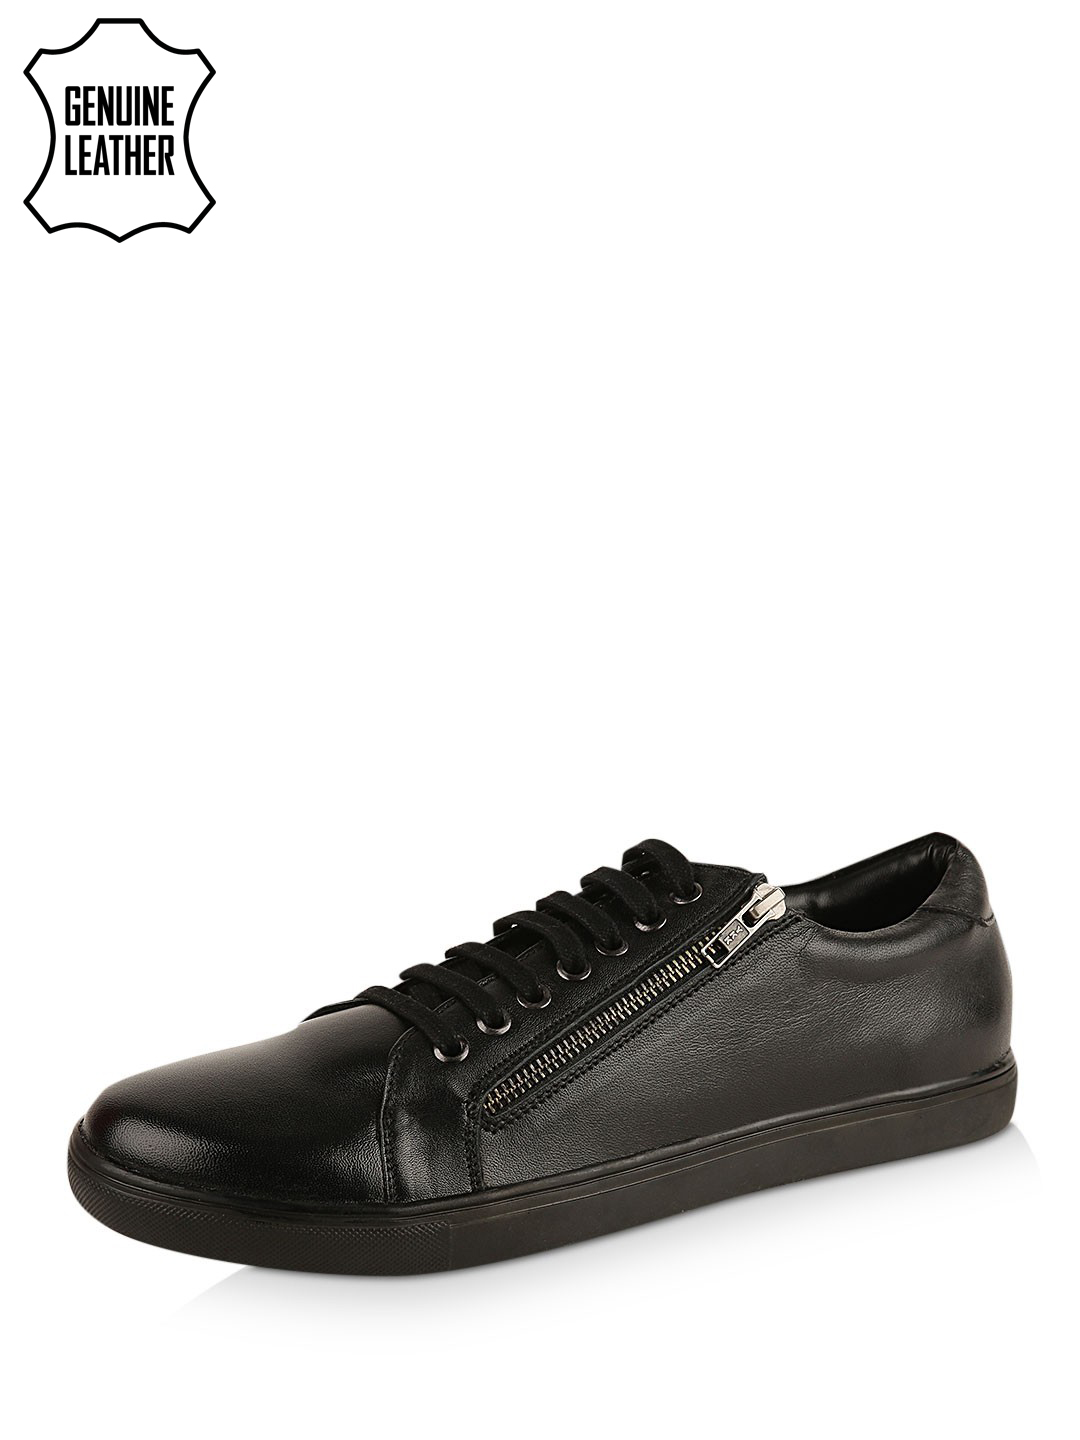 Griffin Black Leather Sneakers With Side Zipper 1